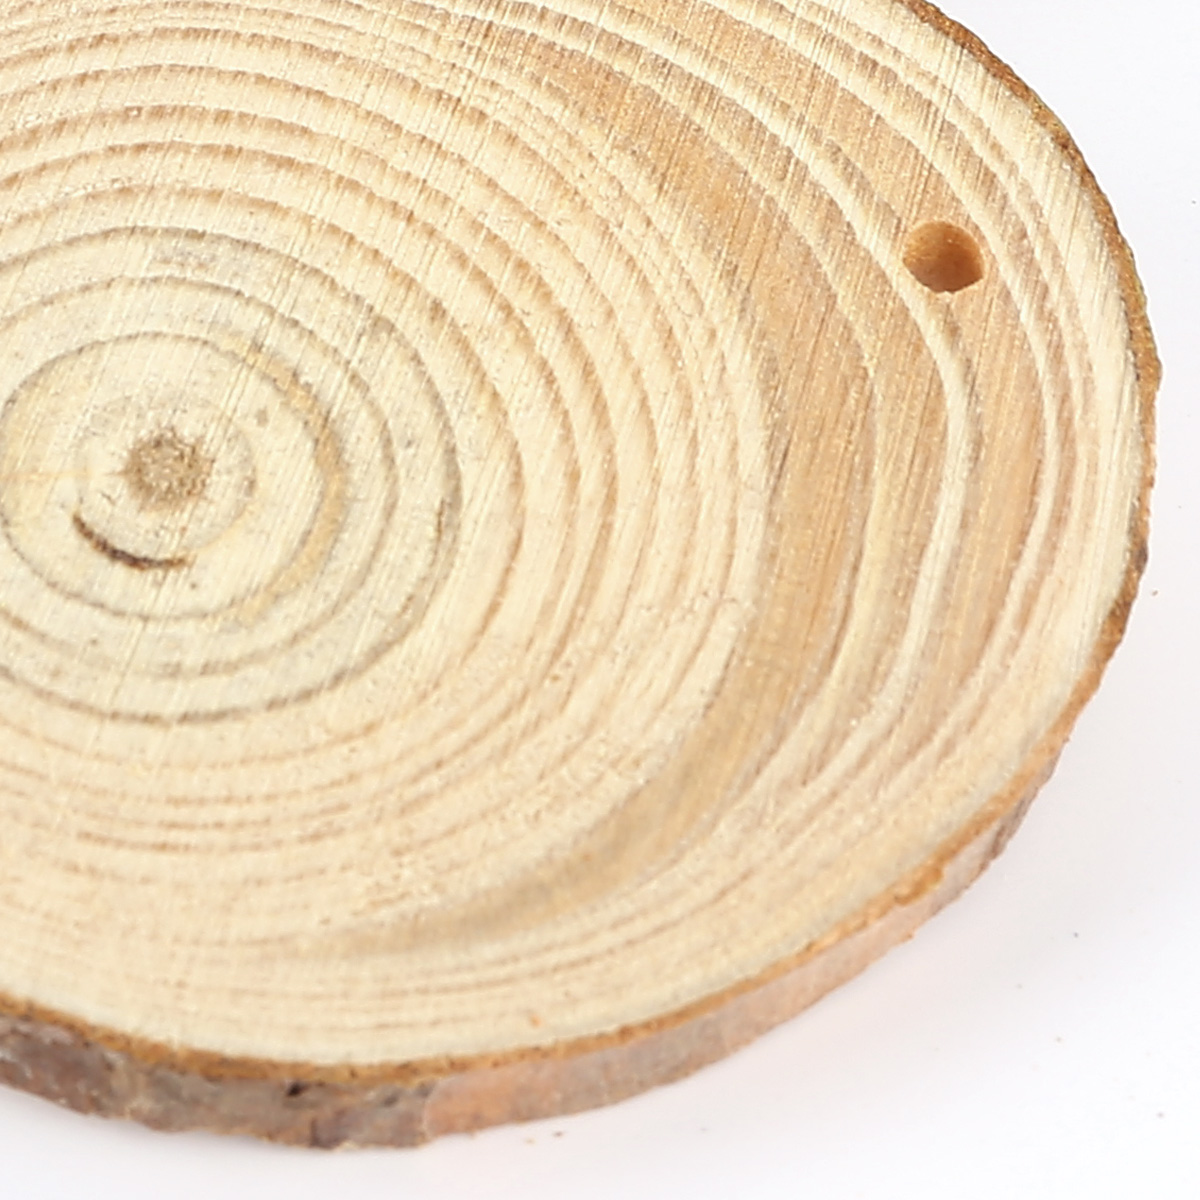 Wooden wood log slices natural tree bark round shape for How to cut wood slices